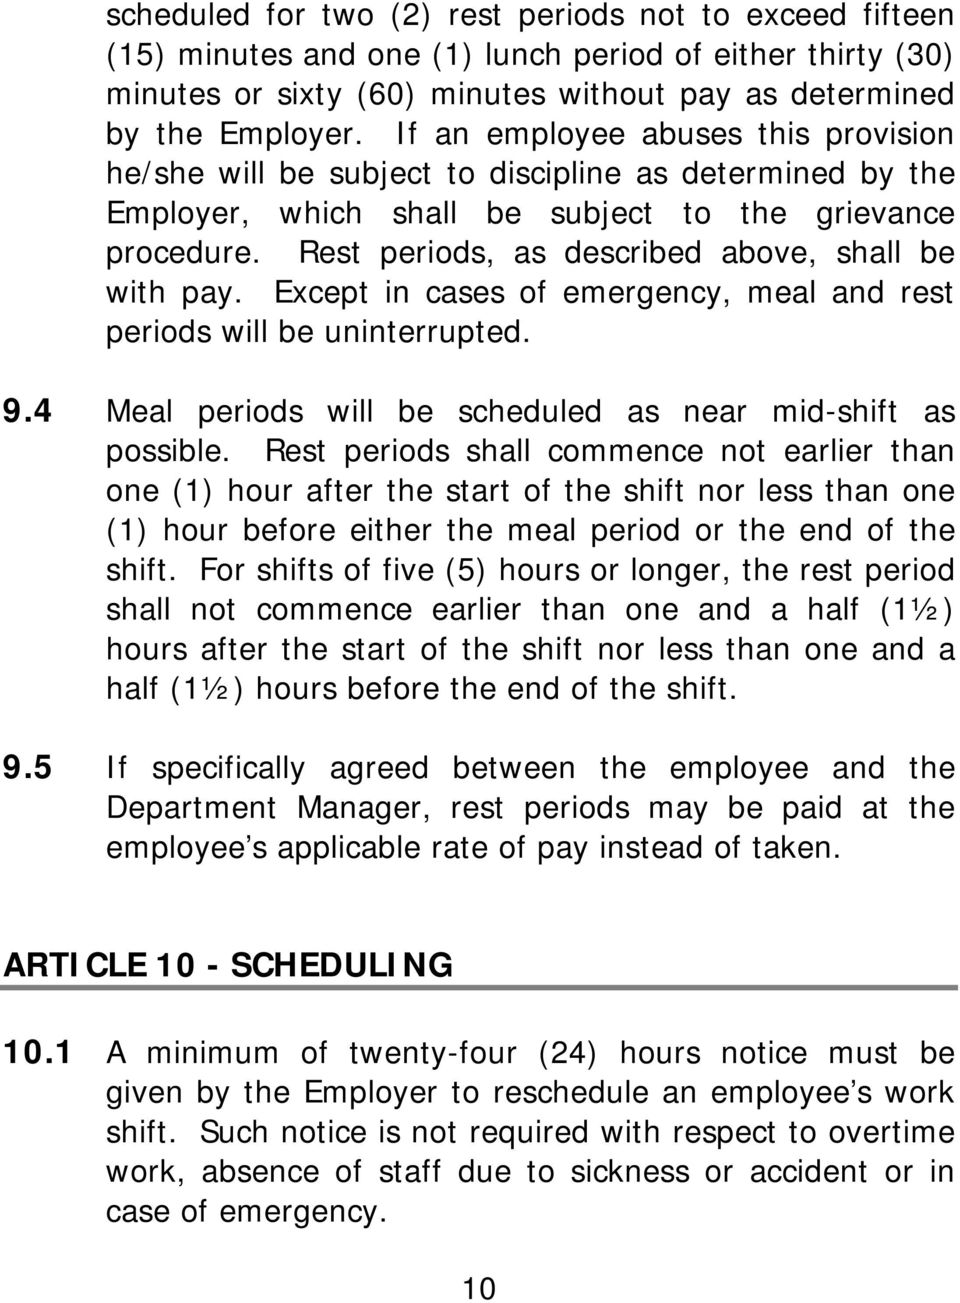 Rest periods, as described above, shall be with pay. Except in cases of emergency, meal and rest periods will be uninterrupted. 9.4 Meal periods will be scheduled as near mid-shift as possible.